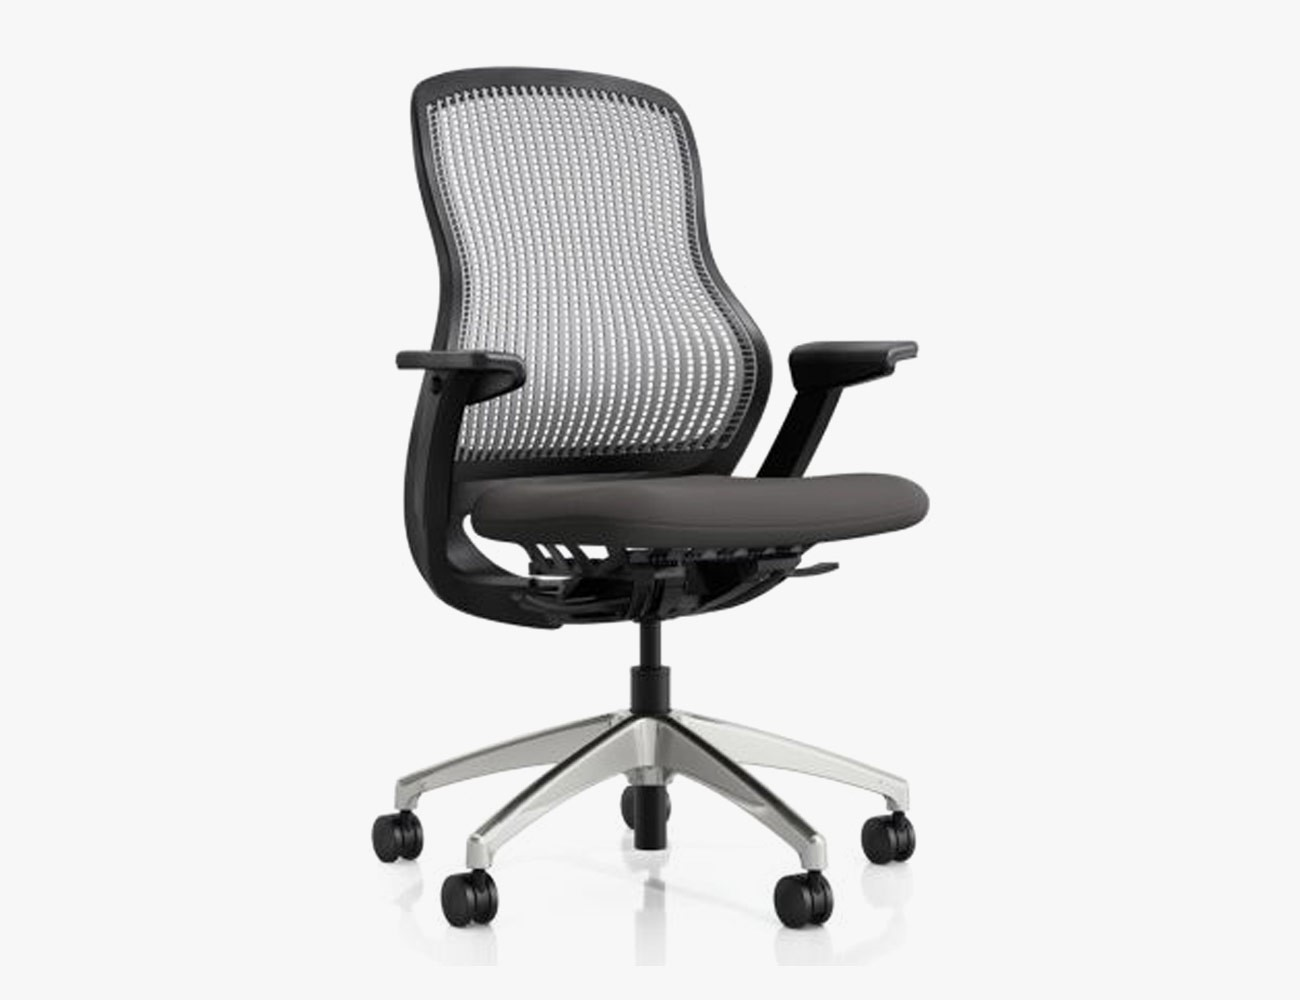 ergonomic chair best buy leather and wood 3 places to an autonomous